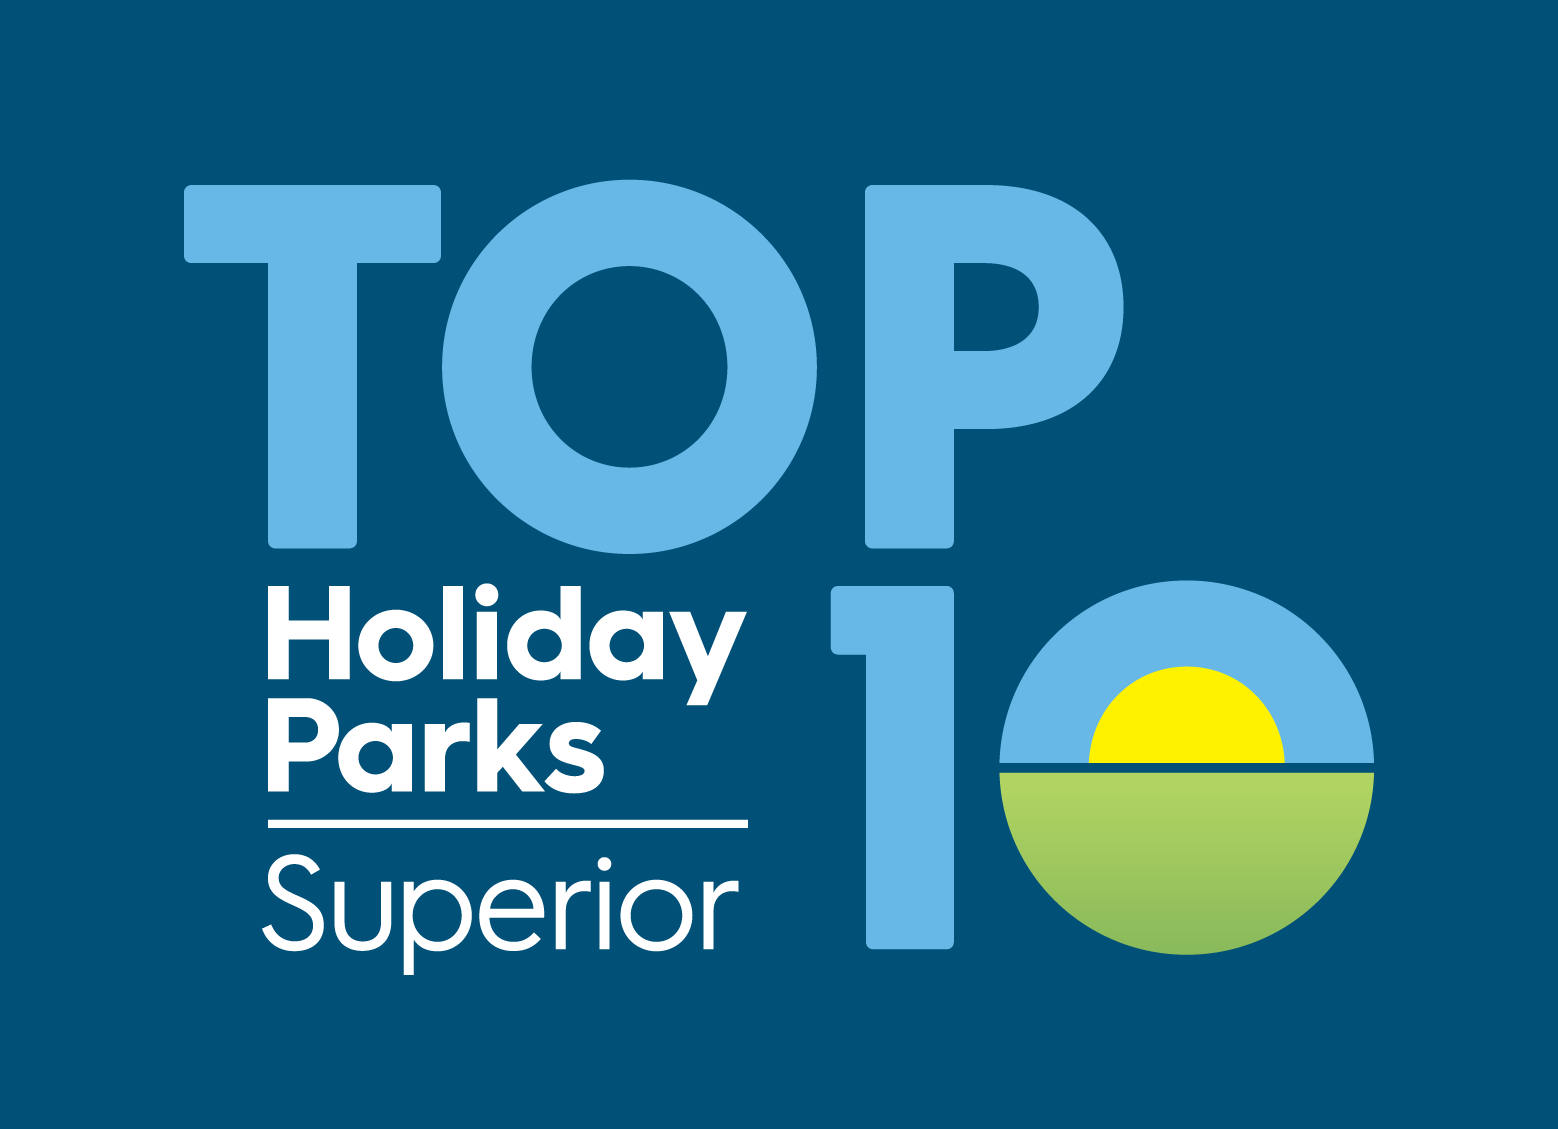 TOP 10 Holiday Parks